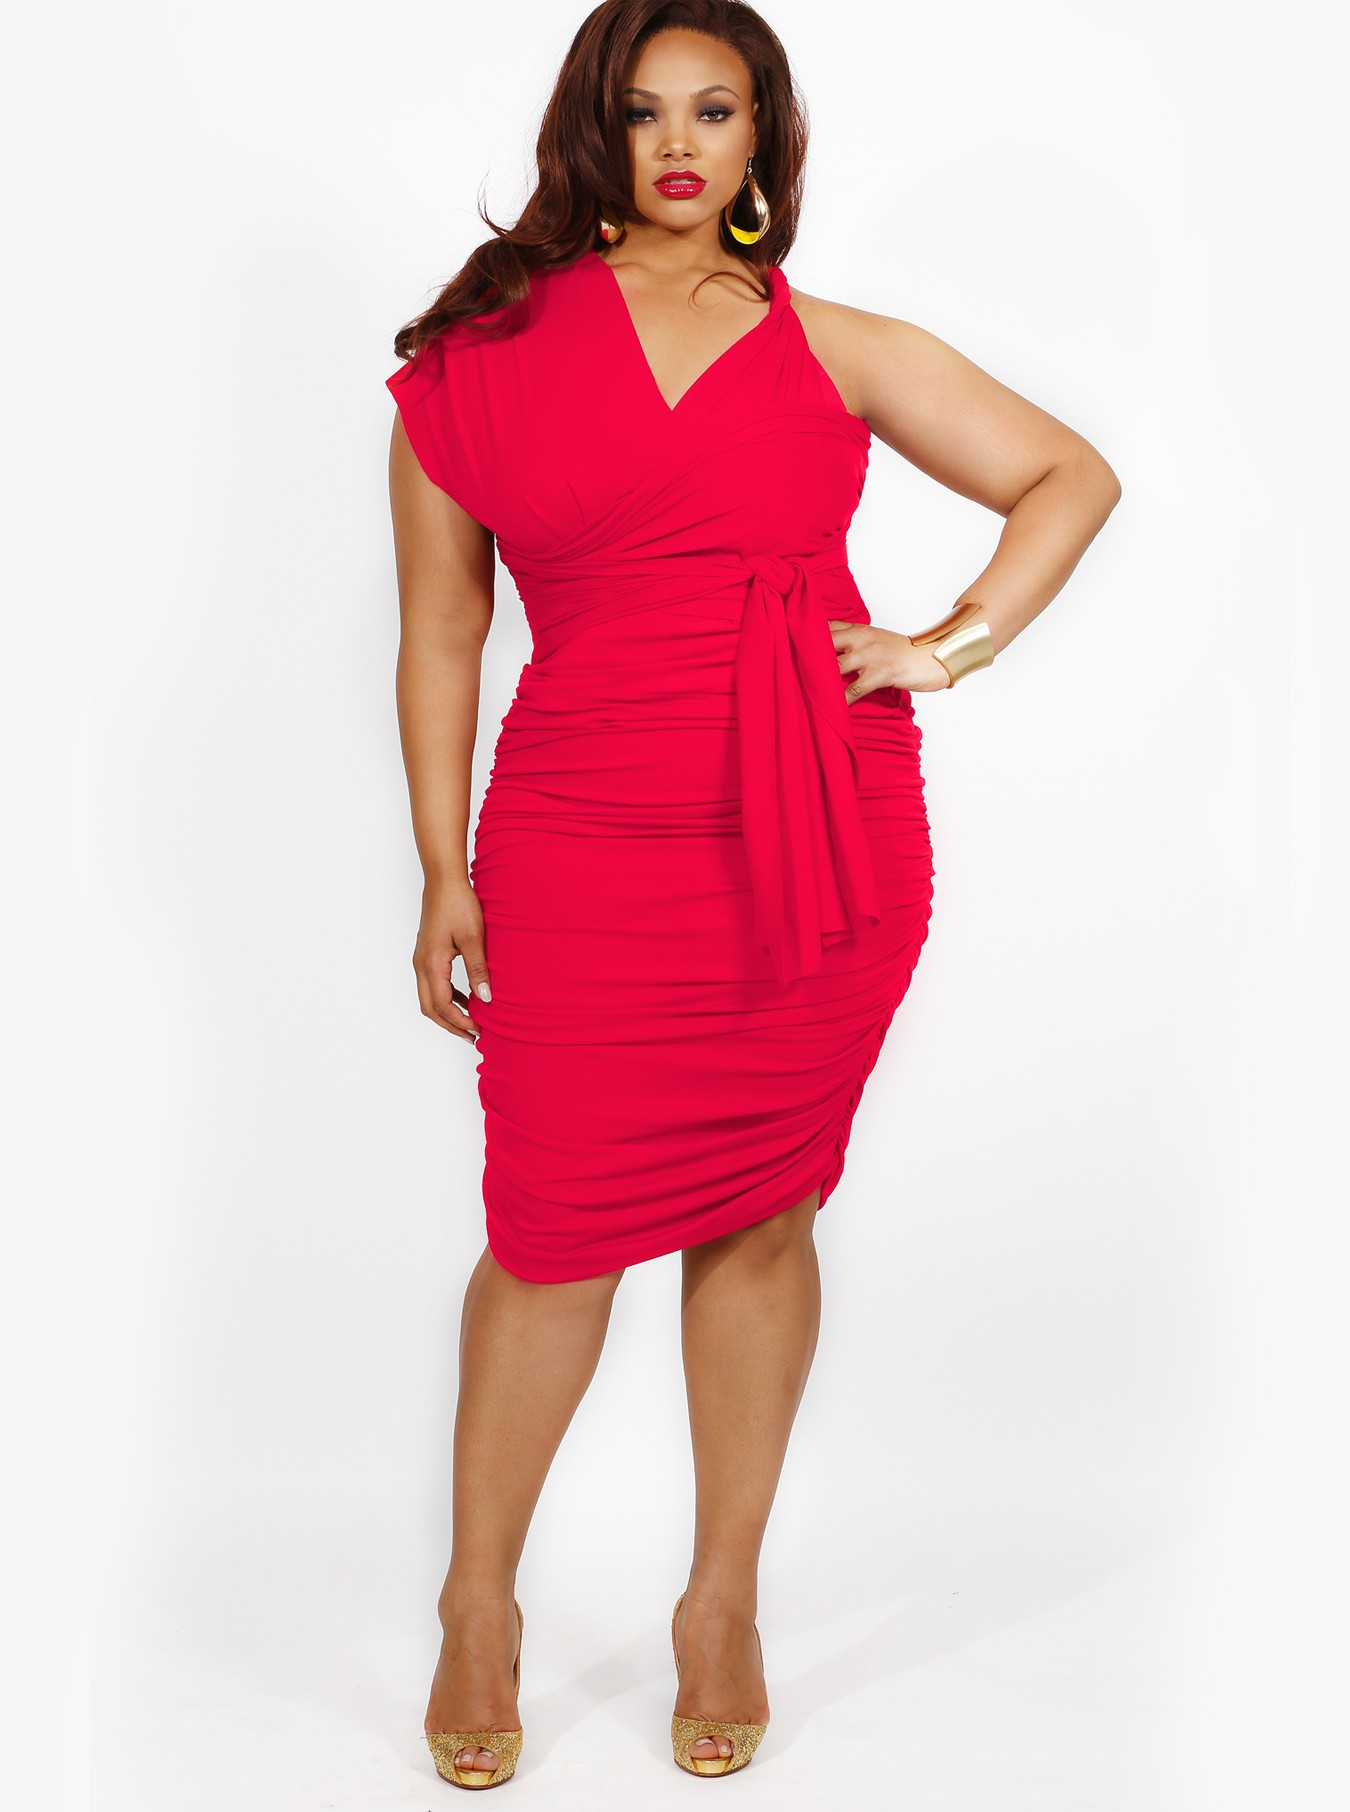 Plus Size Dress Dressed Up Girl